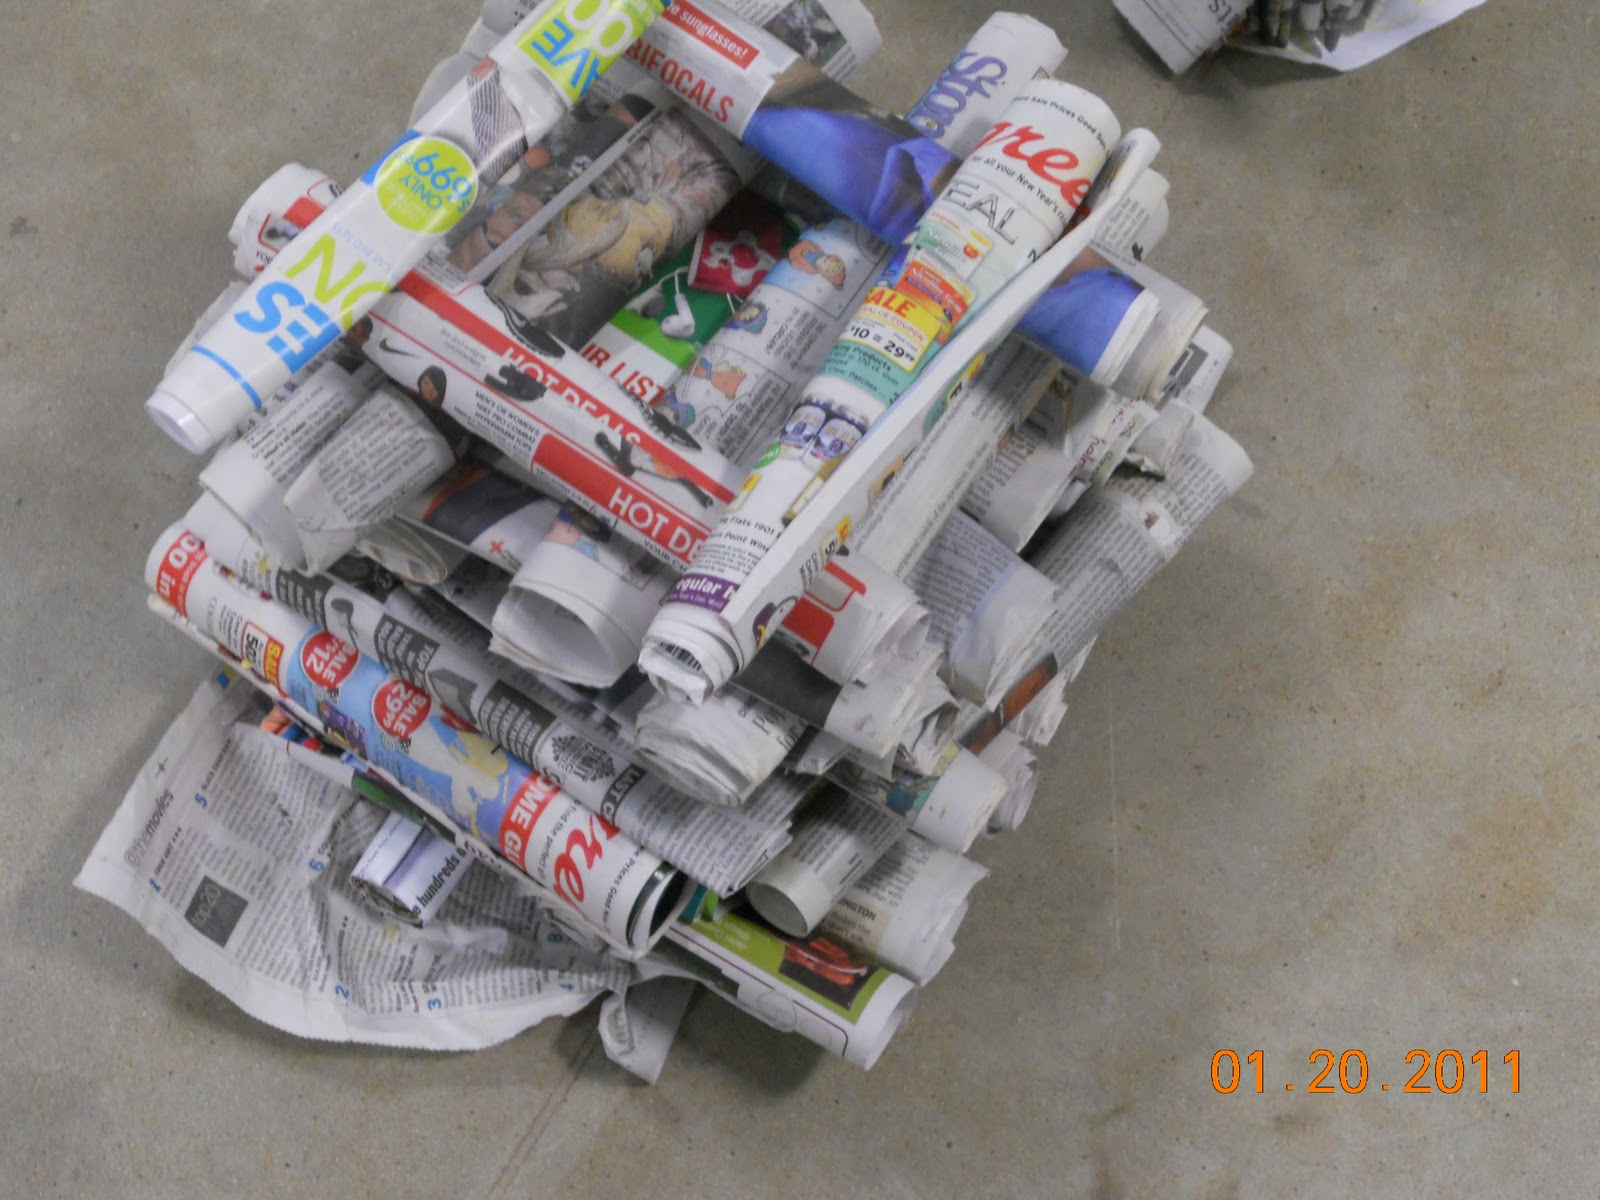 Newspaper Tower